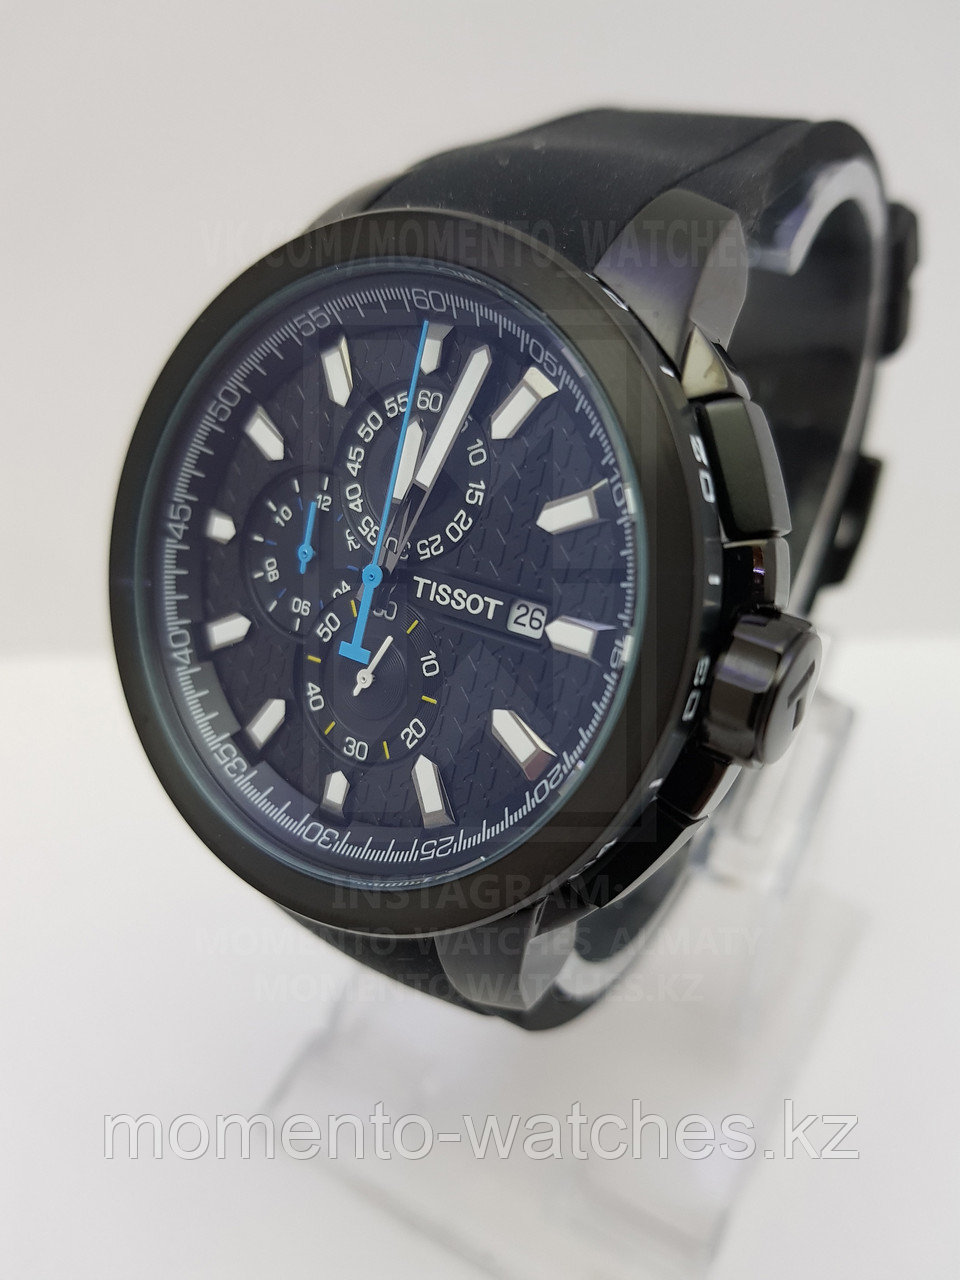 Мужские часы Tissot SPECIAL COLLECTIONS